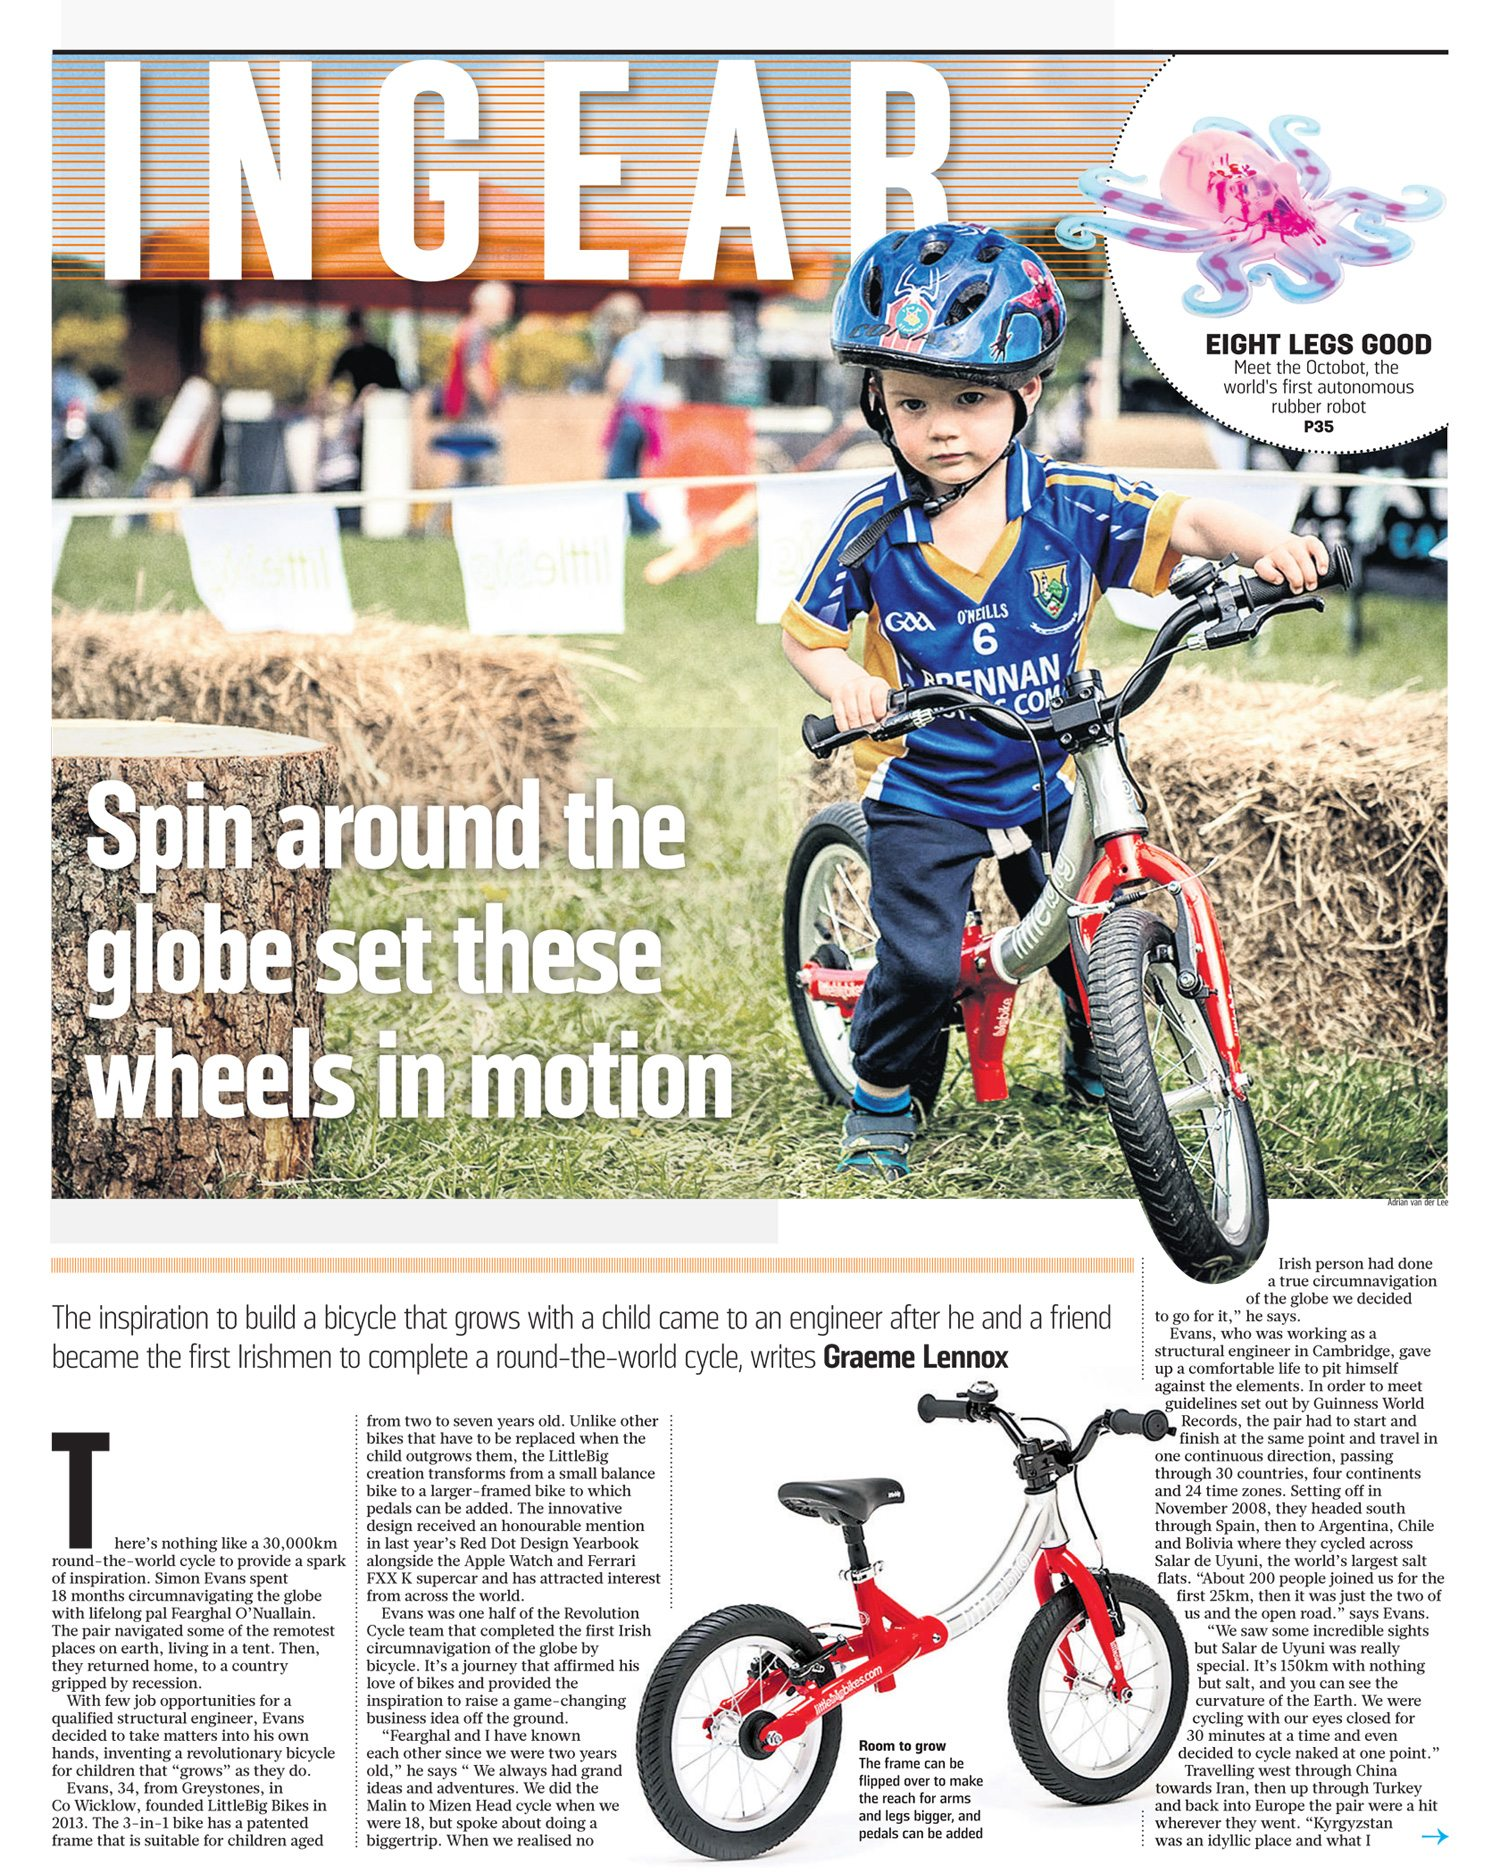 Sunday-Times-LittleBig-bikes-feature